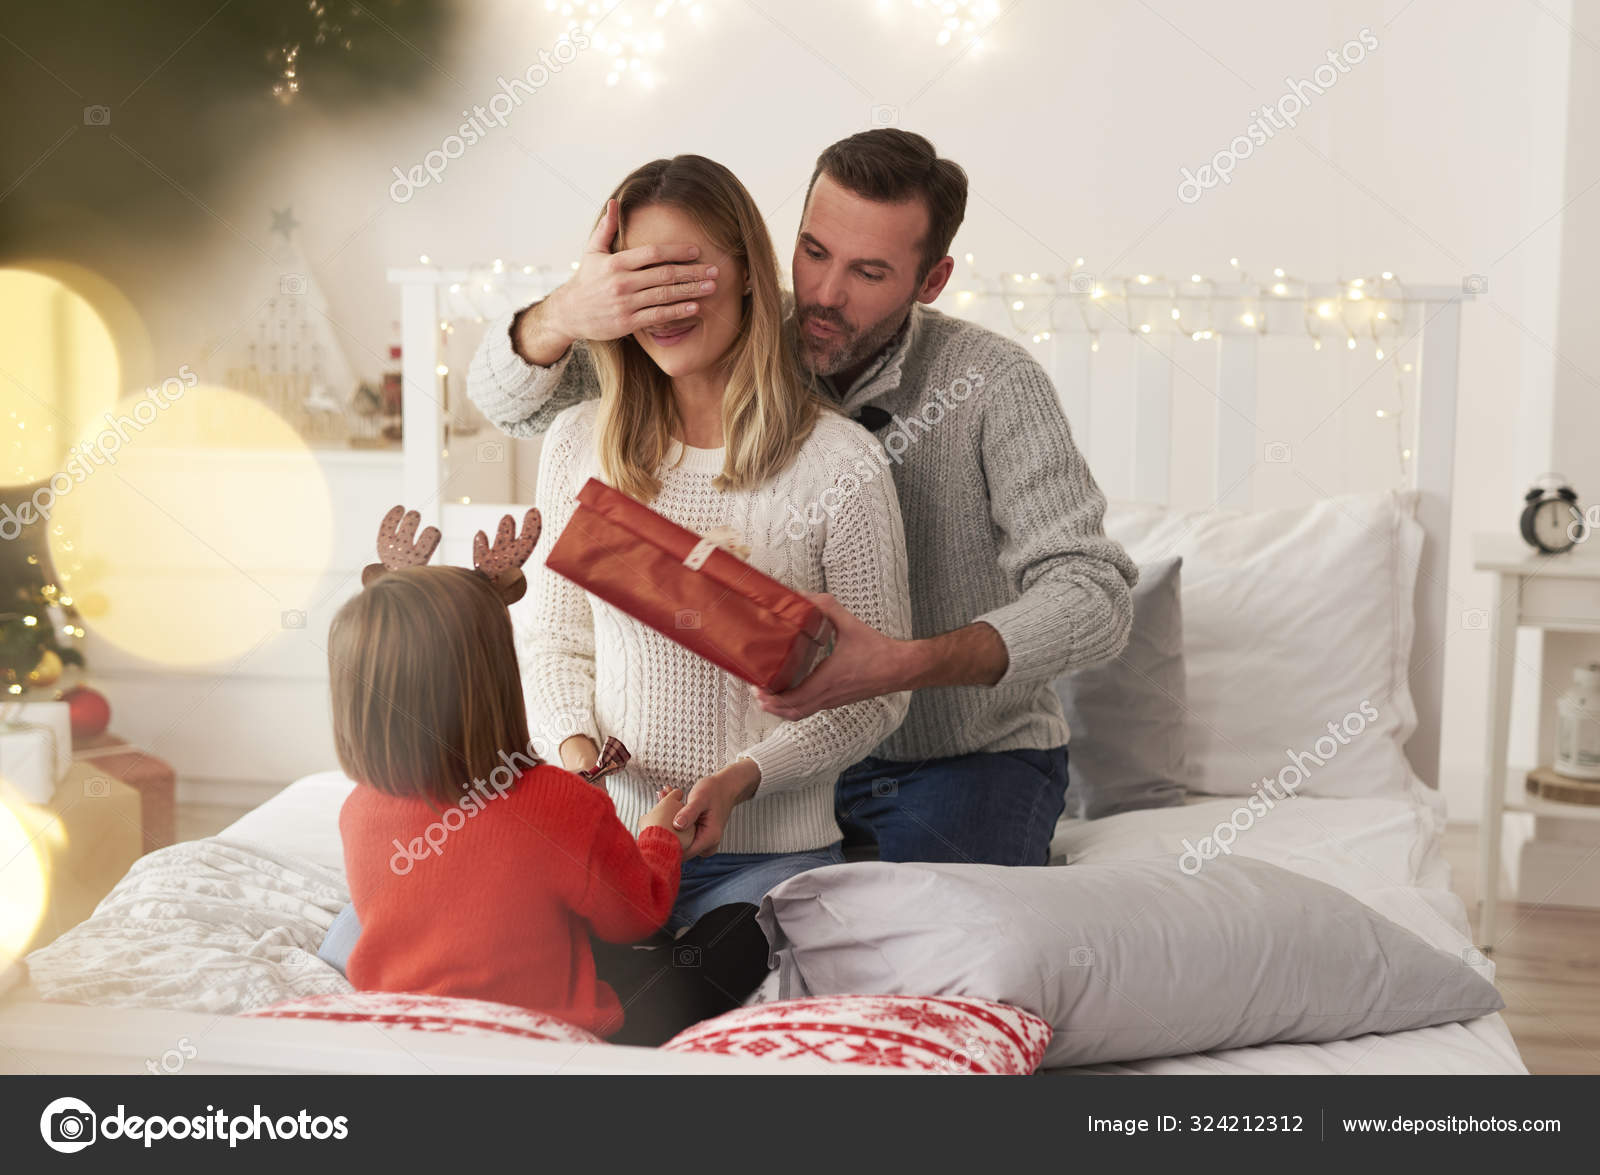 Family starting Christmas from opening presents in bed